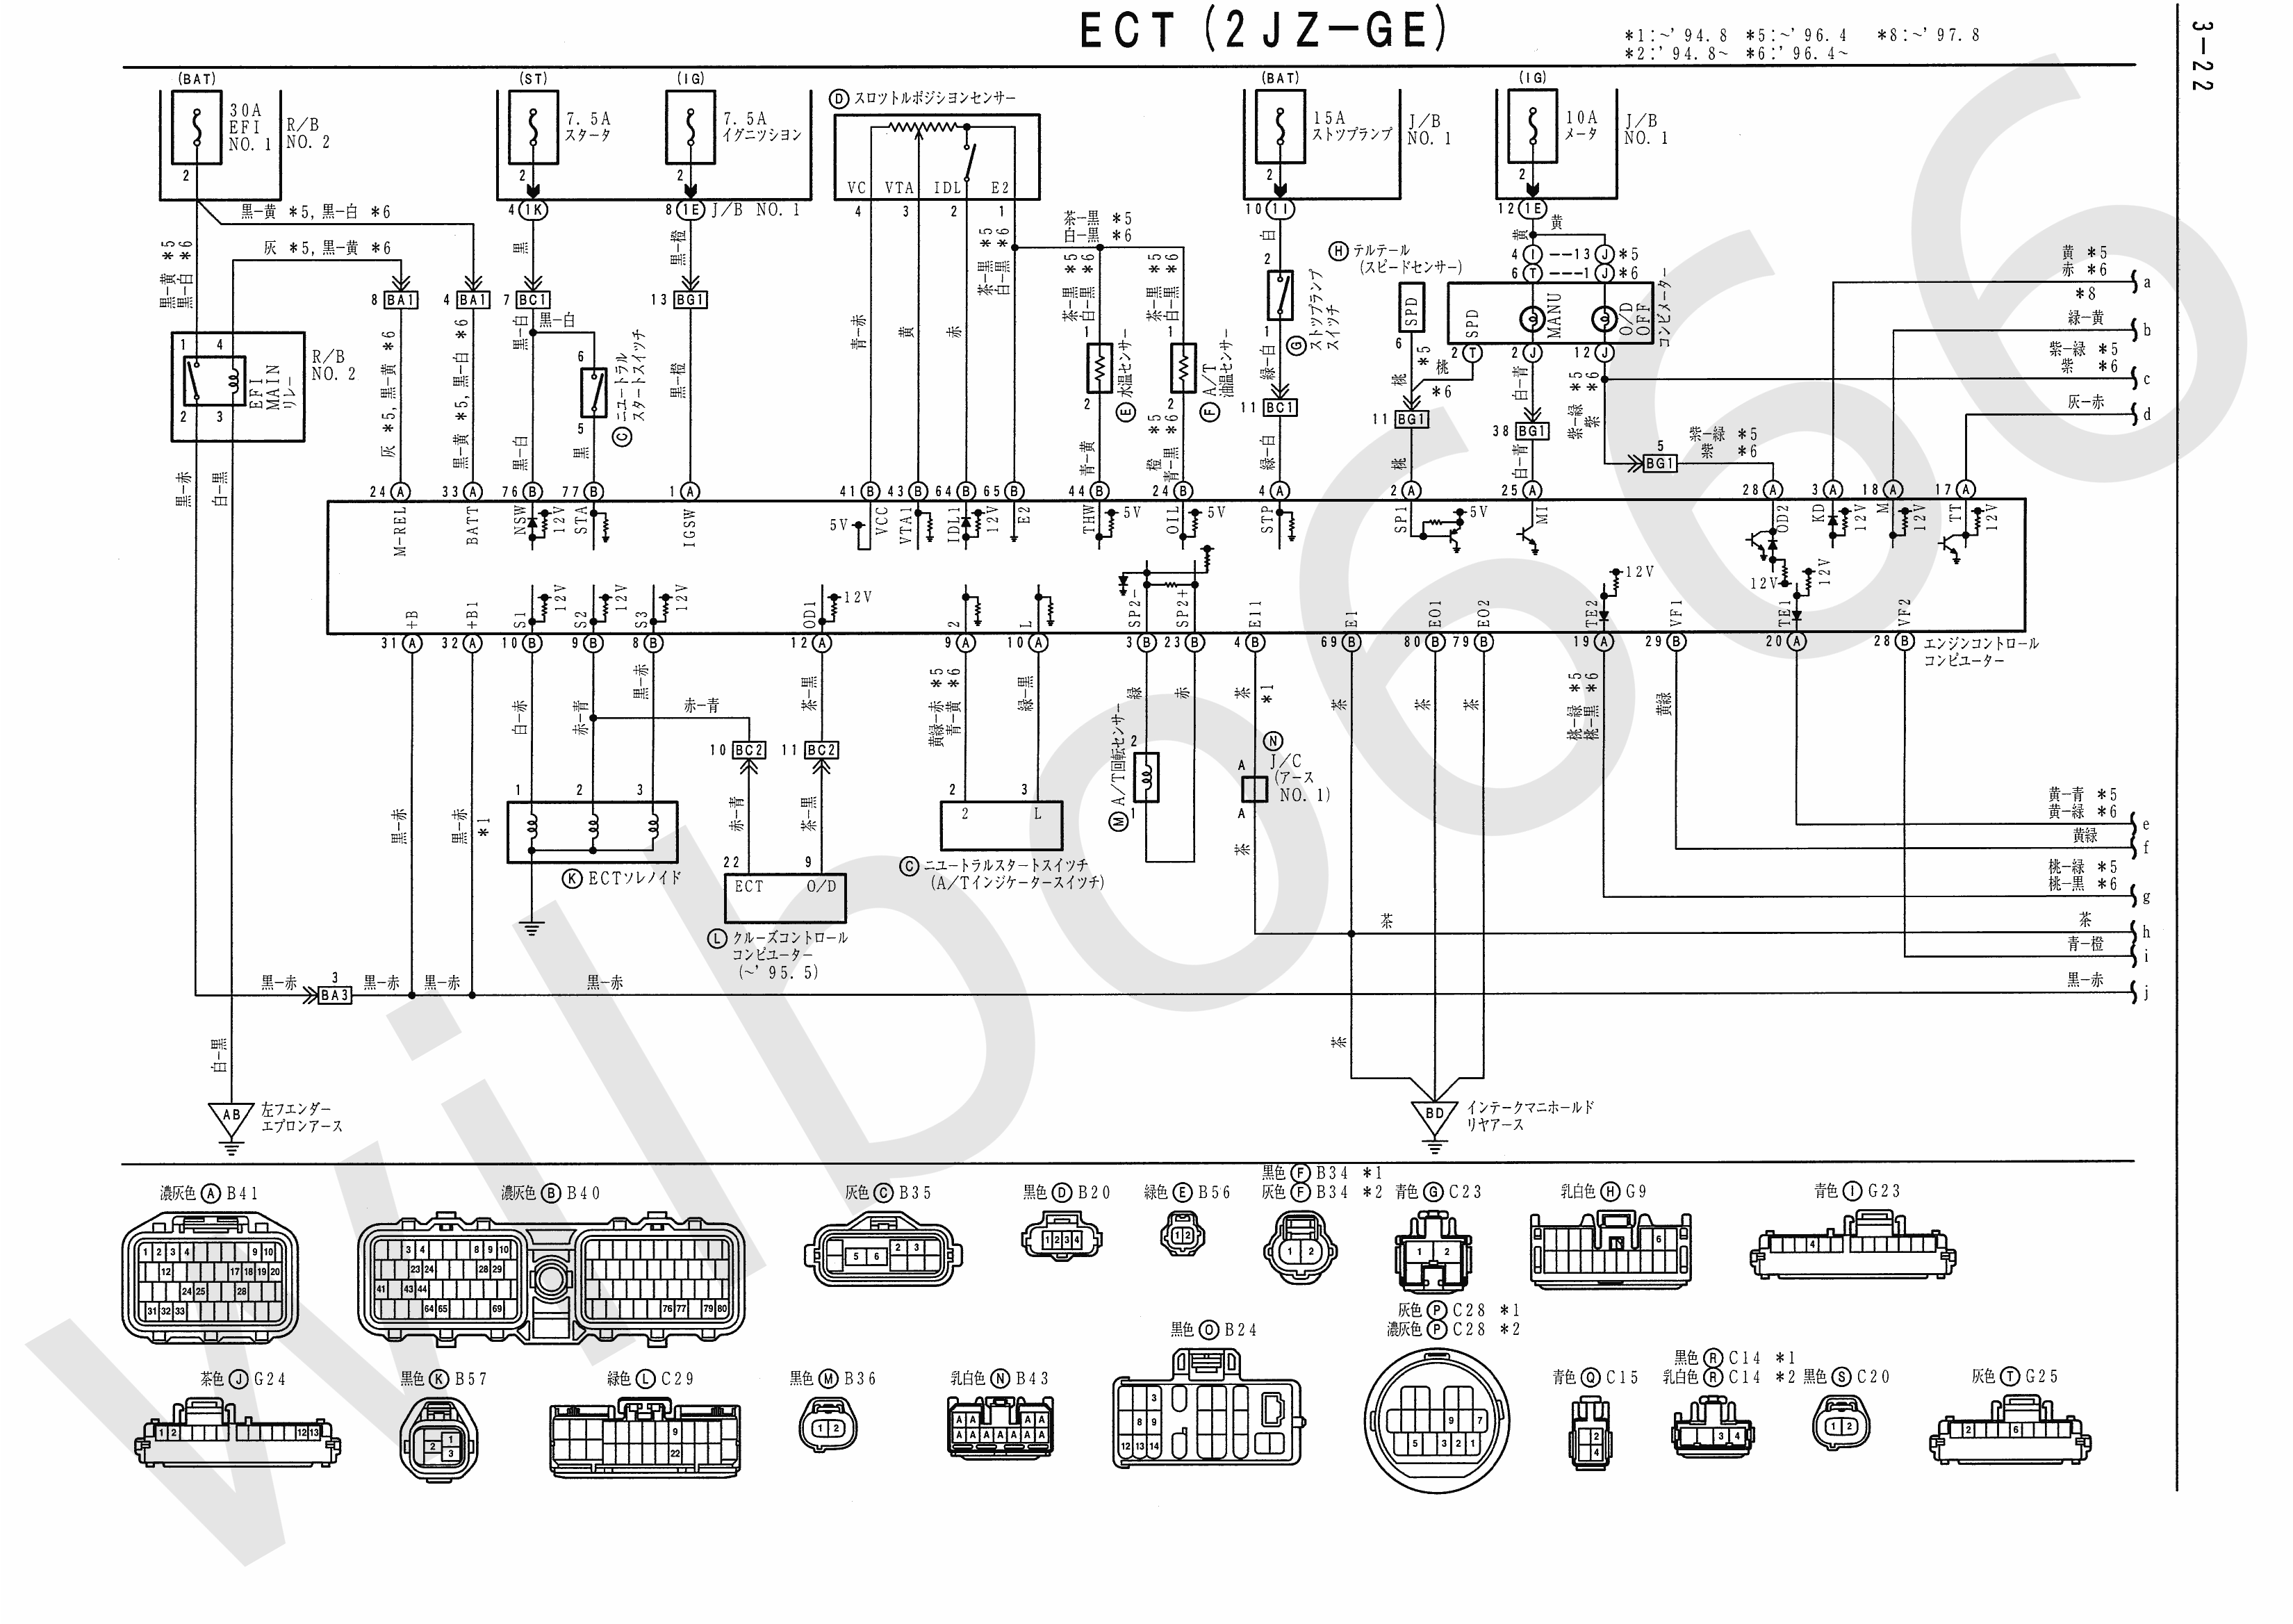 JZA80 Electrical Wiring Diagram 6742505 3 22 wilbo666 2jz ge jza80 supra engine wiring 2jz ge wiring diagram pdf at edmiracle.co